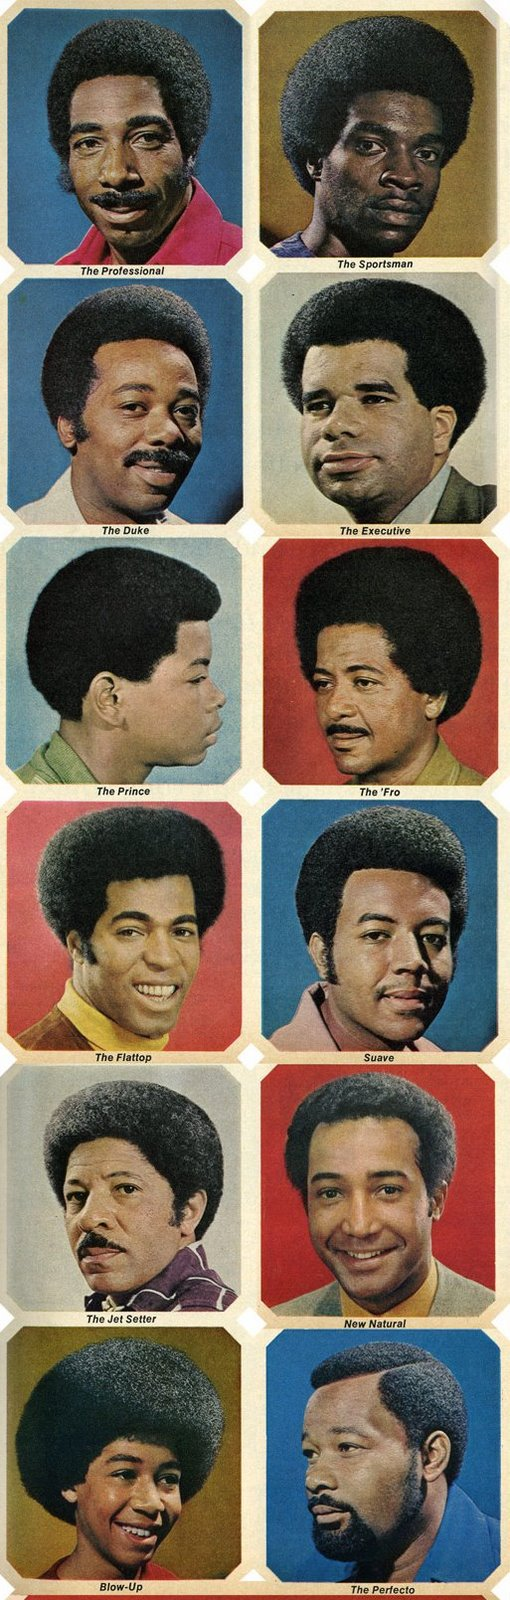 Afros via retrospace